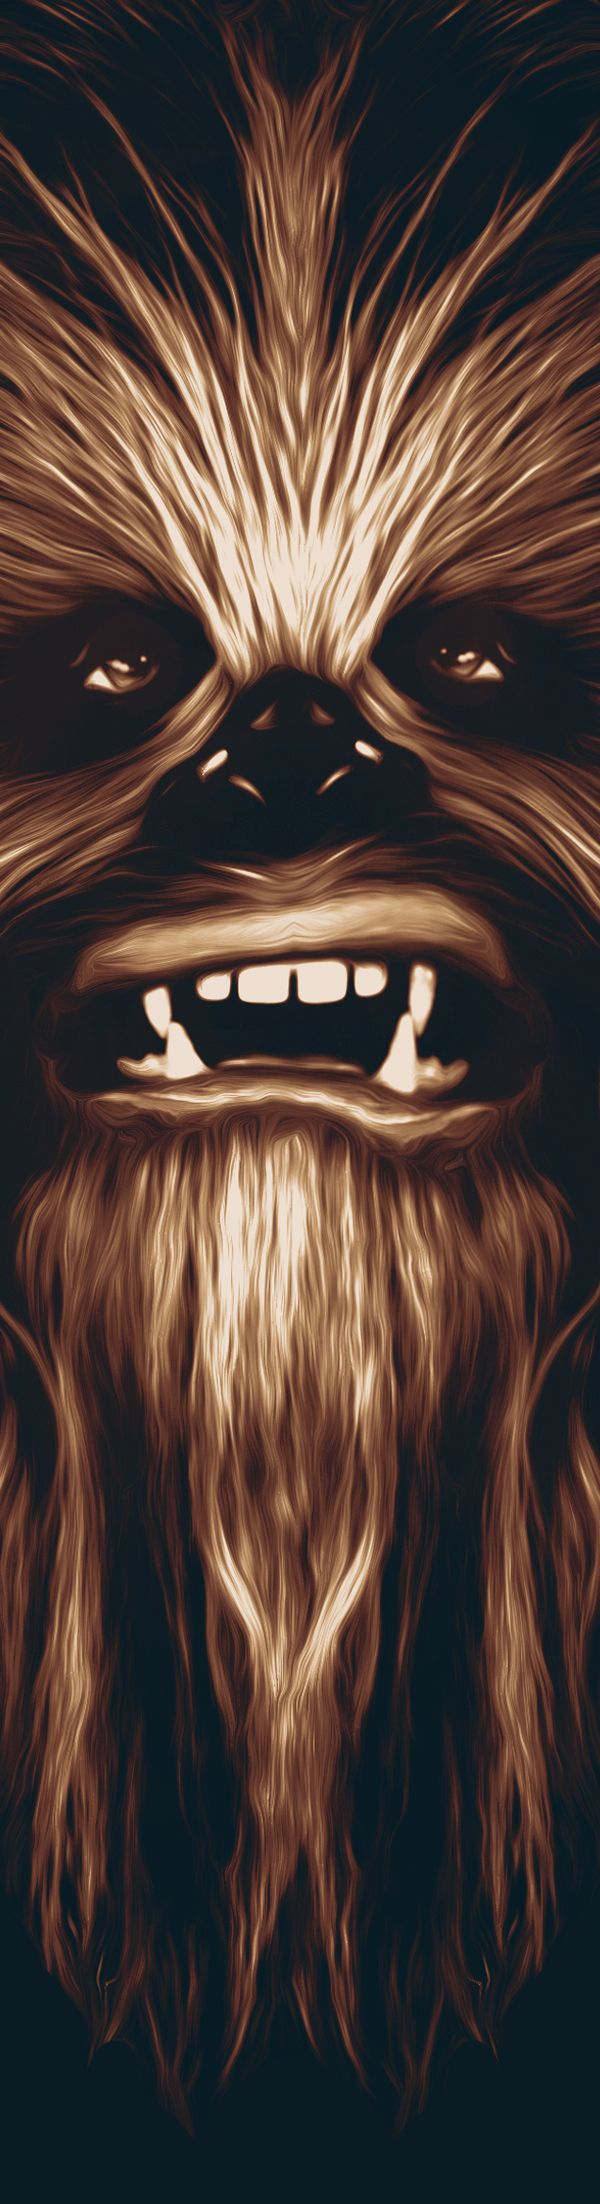 Chewbacca on Behance #starwars_ Kind of reminds me of Jack Nicholson in The Shinning. LOL